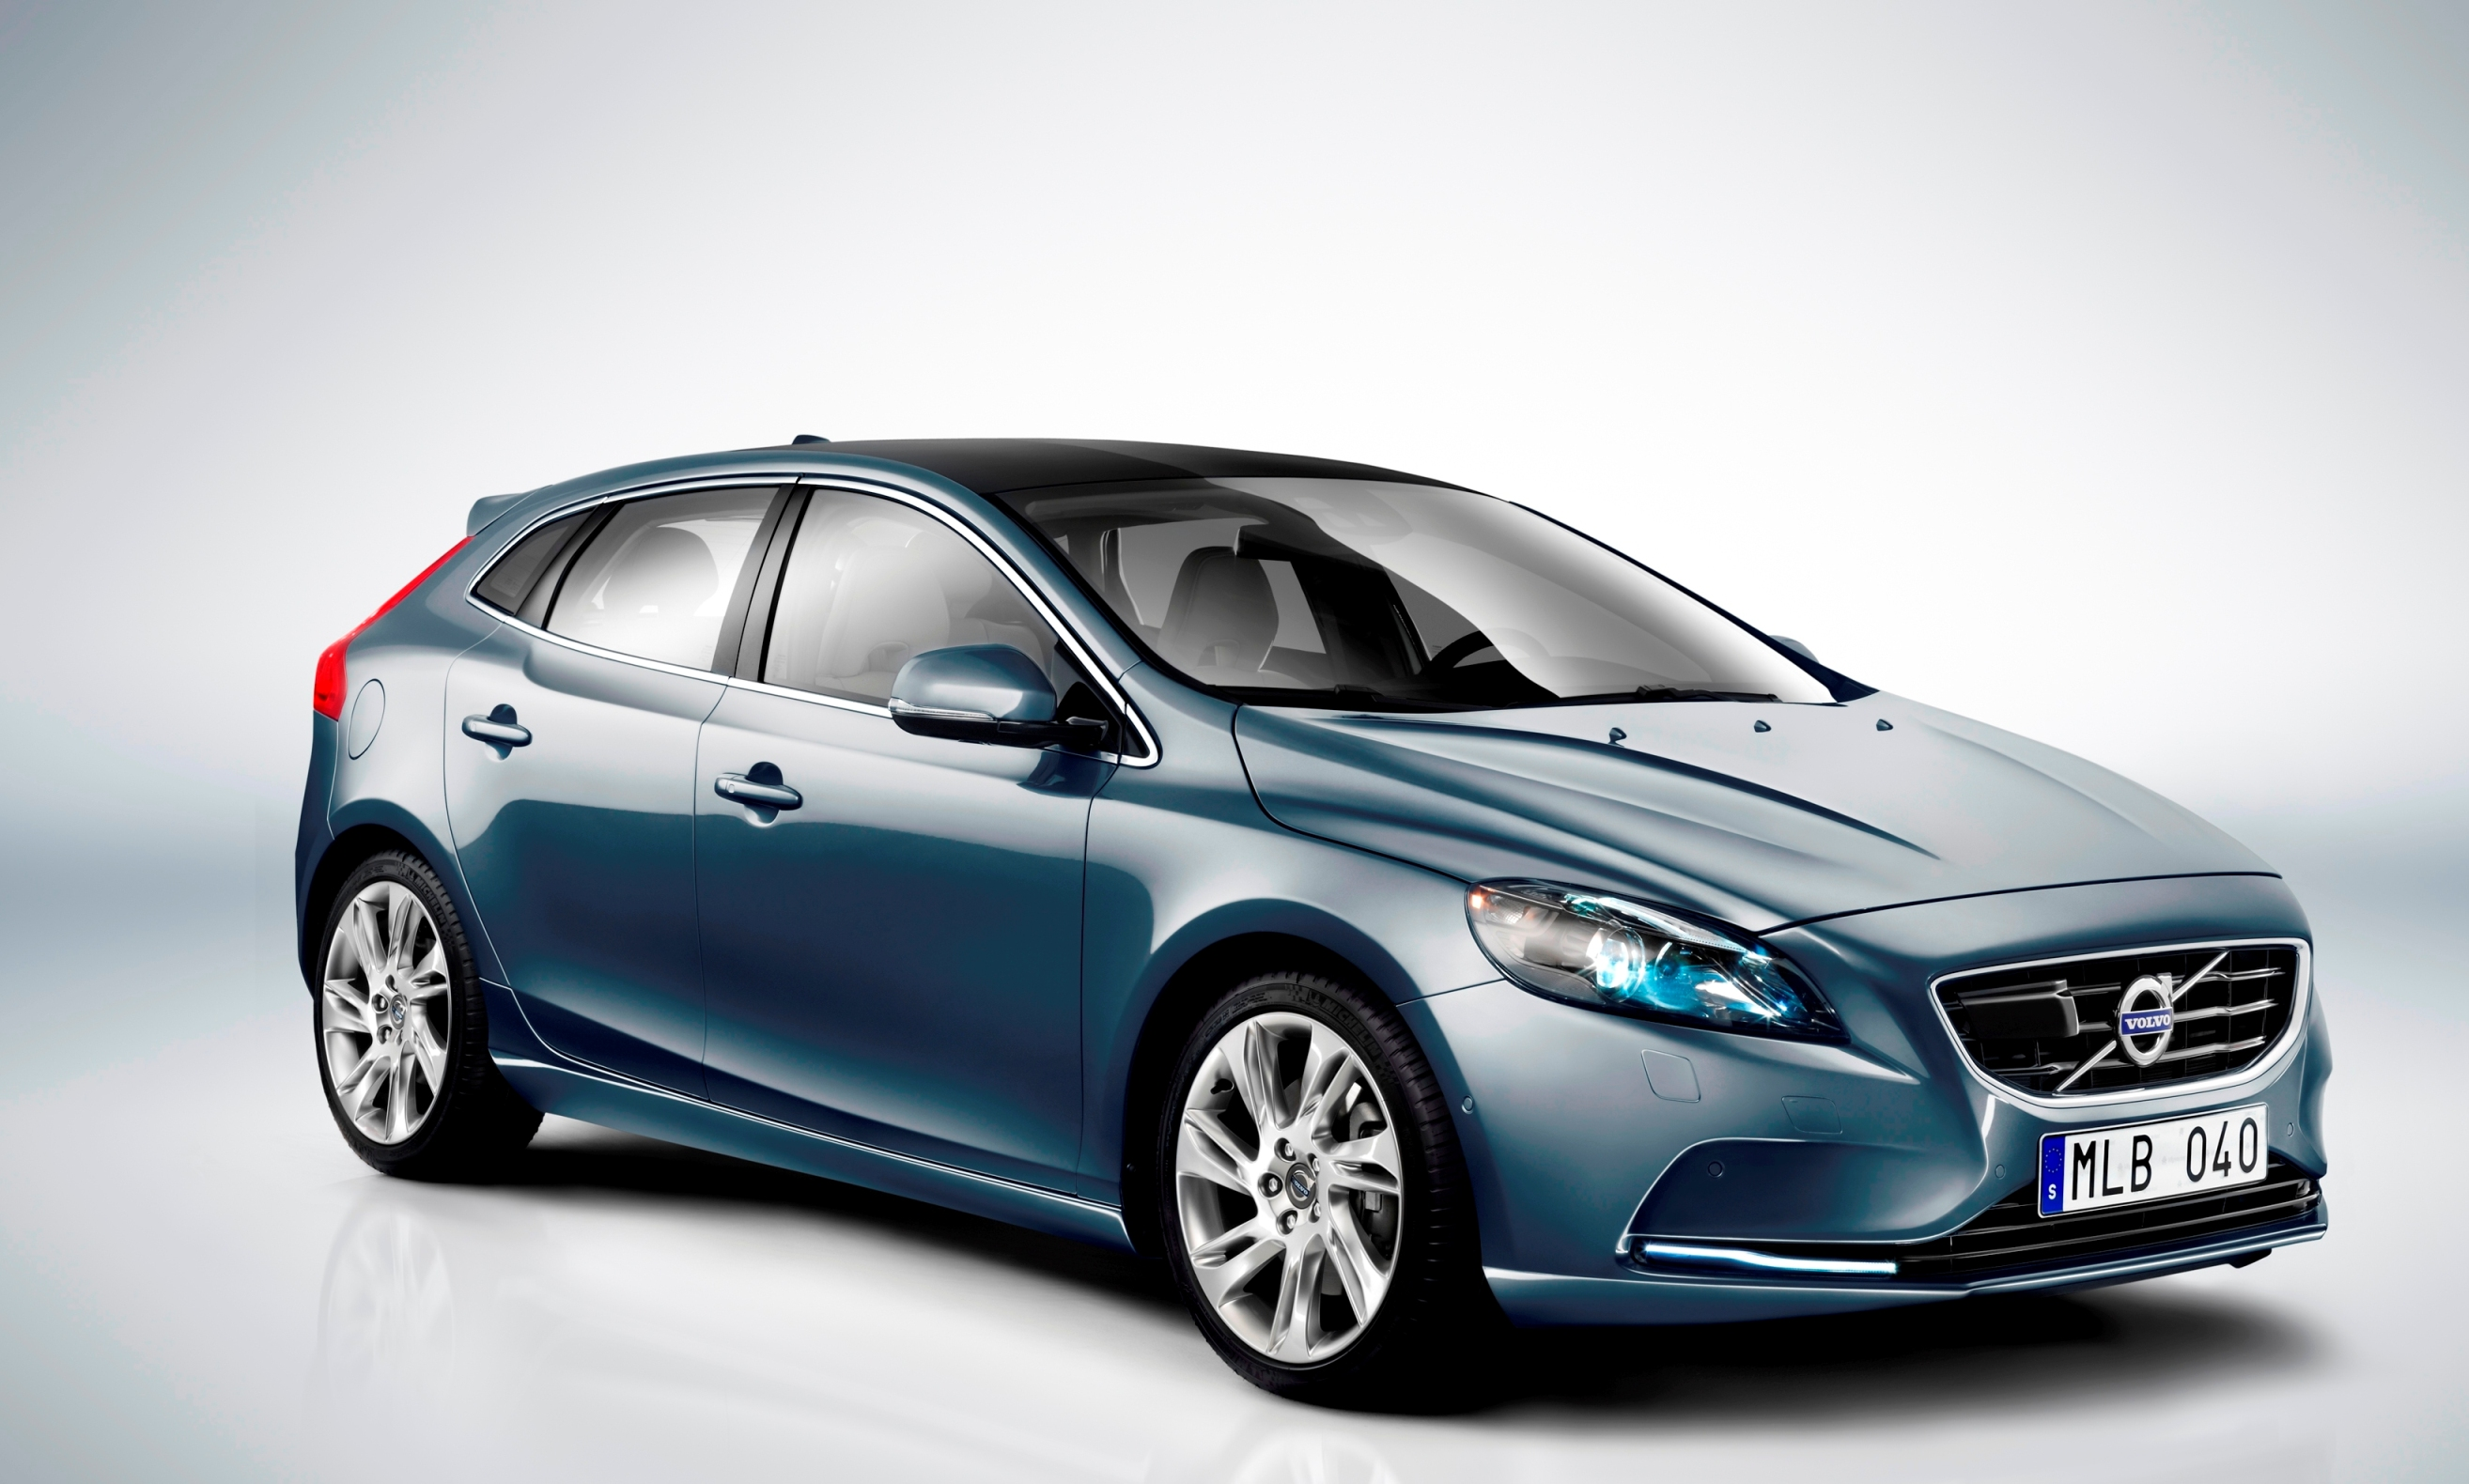 volvo v40 d2 technical details history photos on better. Black Bedroom Furniture Sets. Home Design Ideas